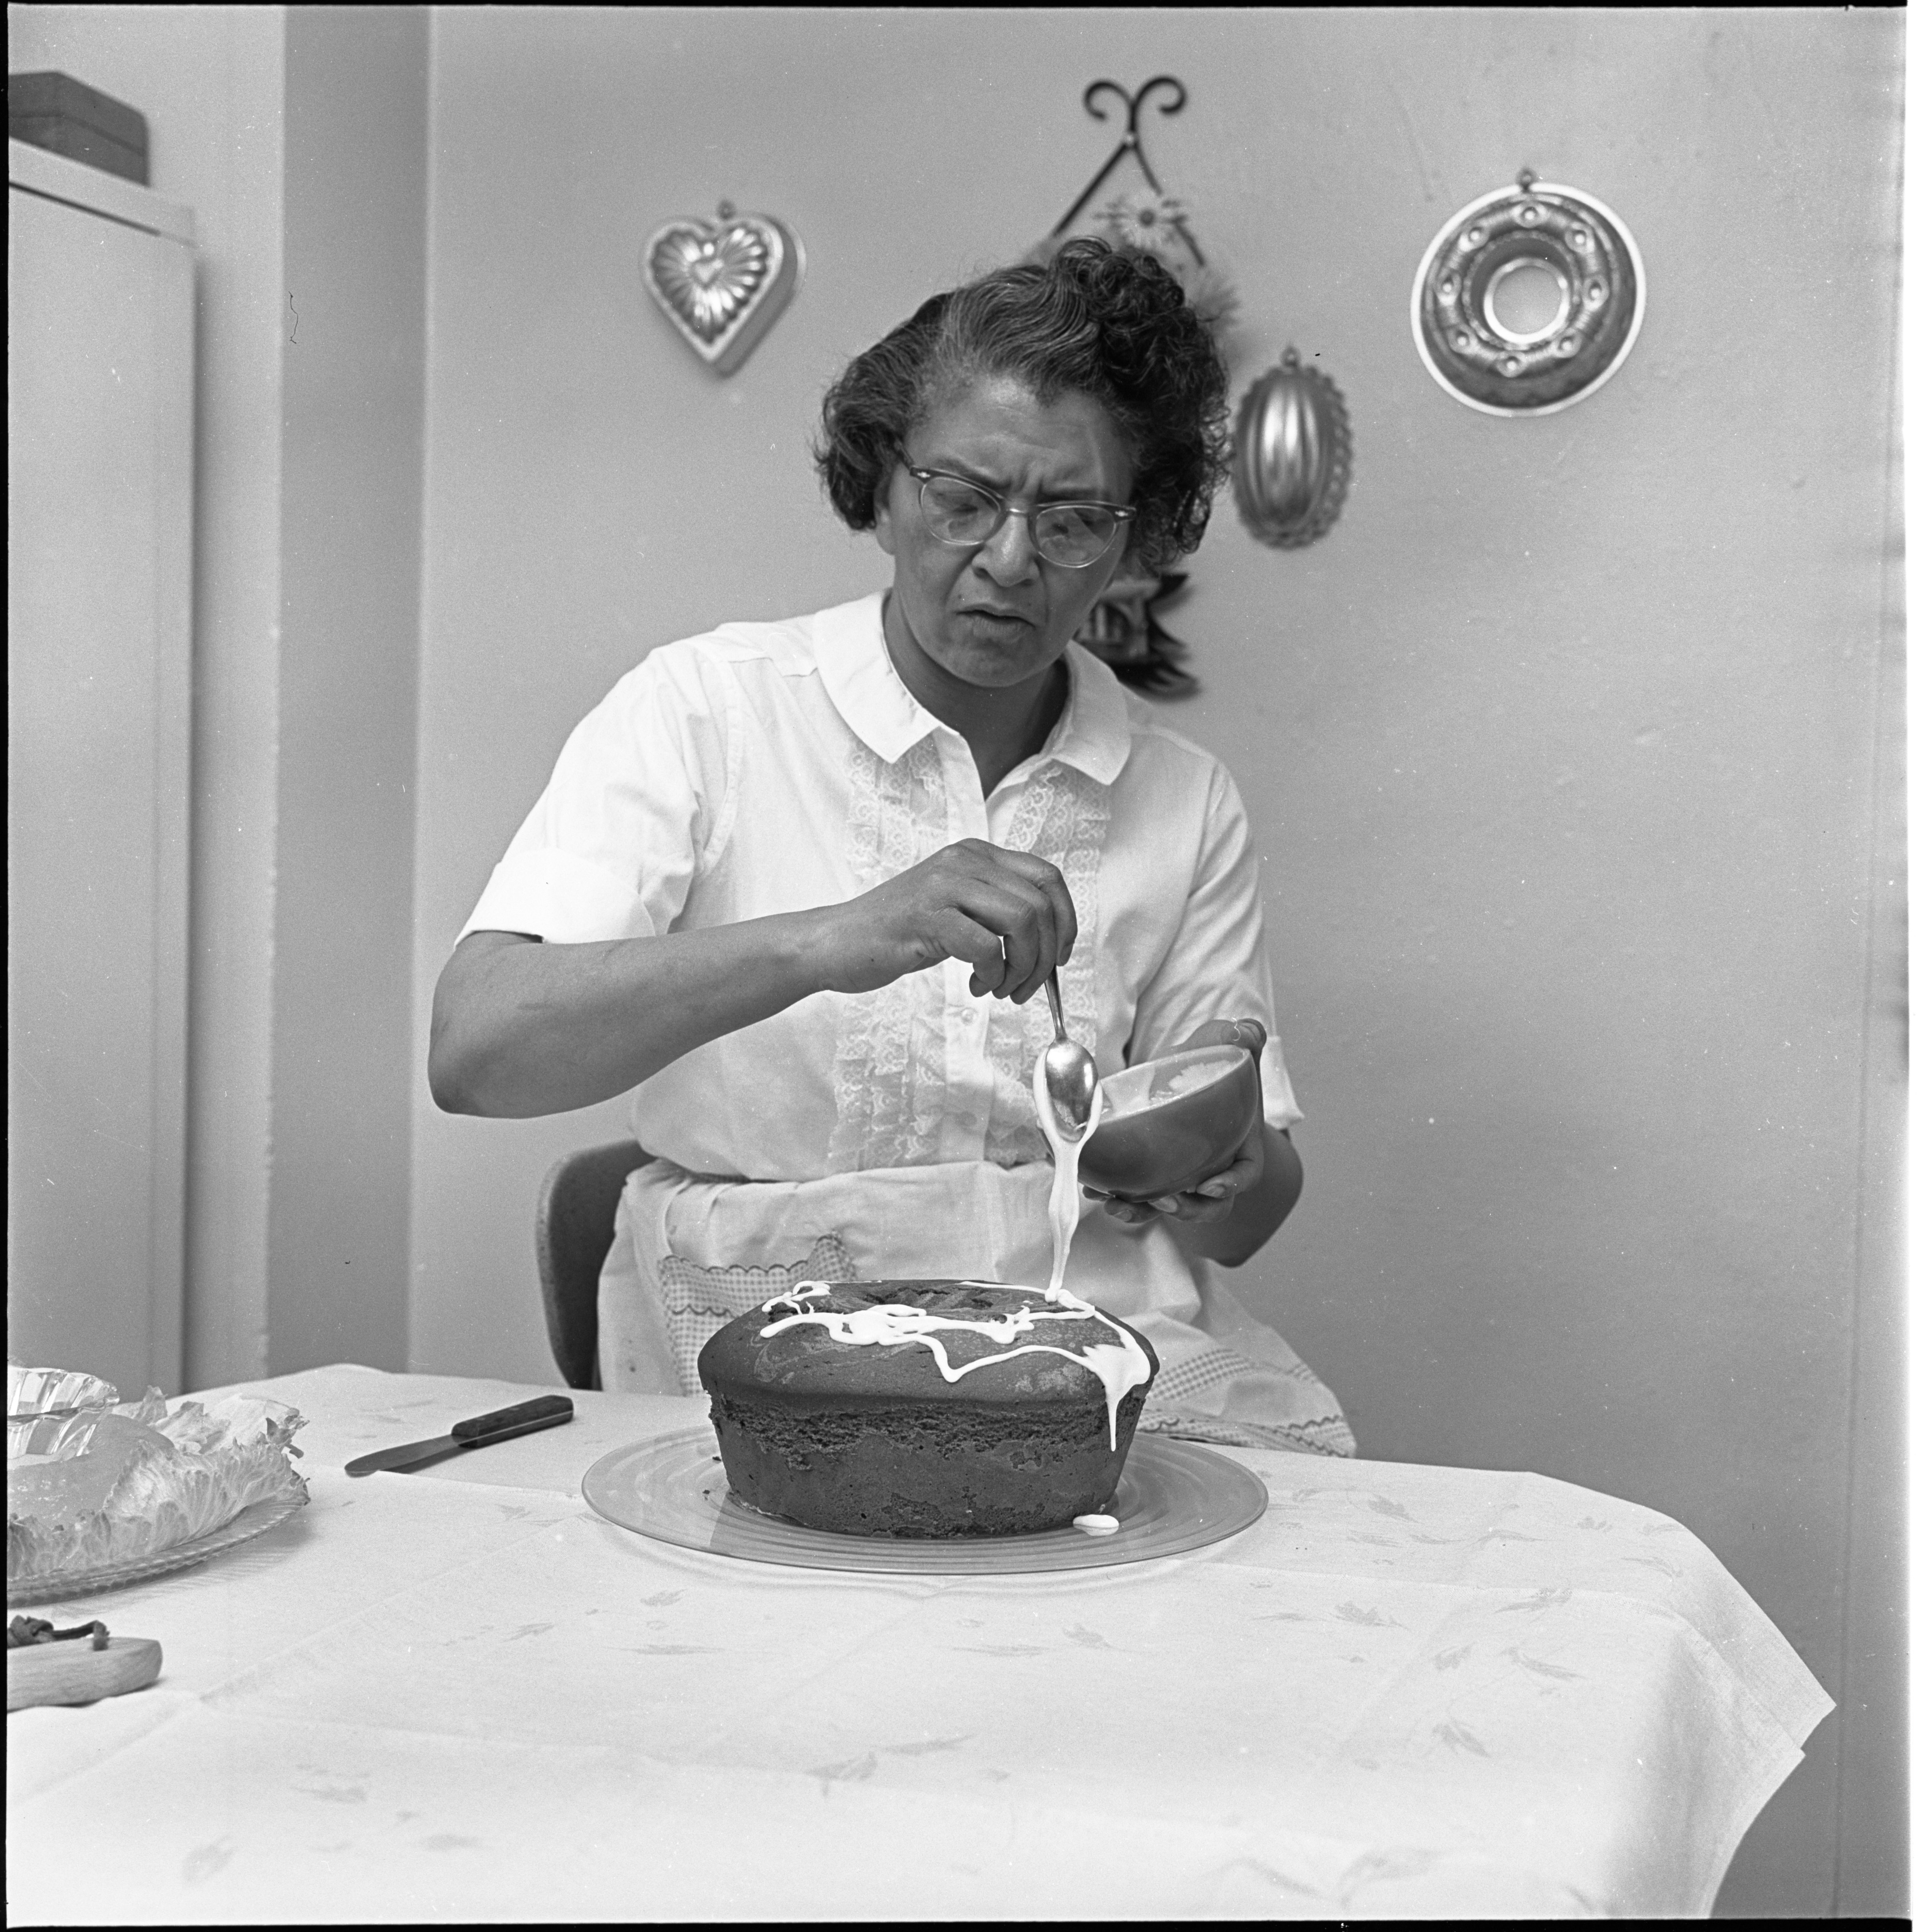 Helen Arnold Drizzles Frosting On A Pound Cake, April 1970 image